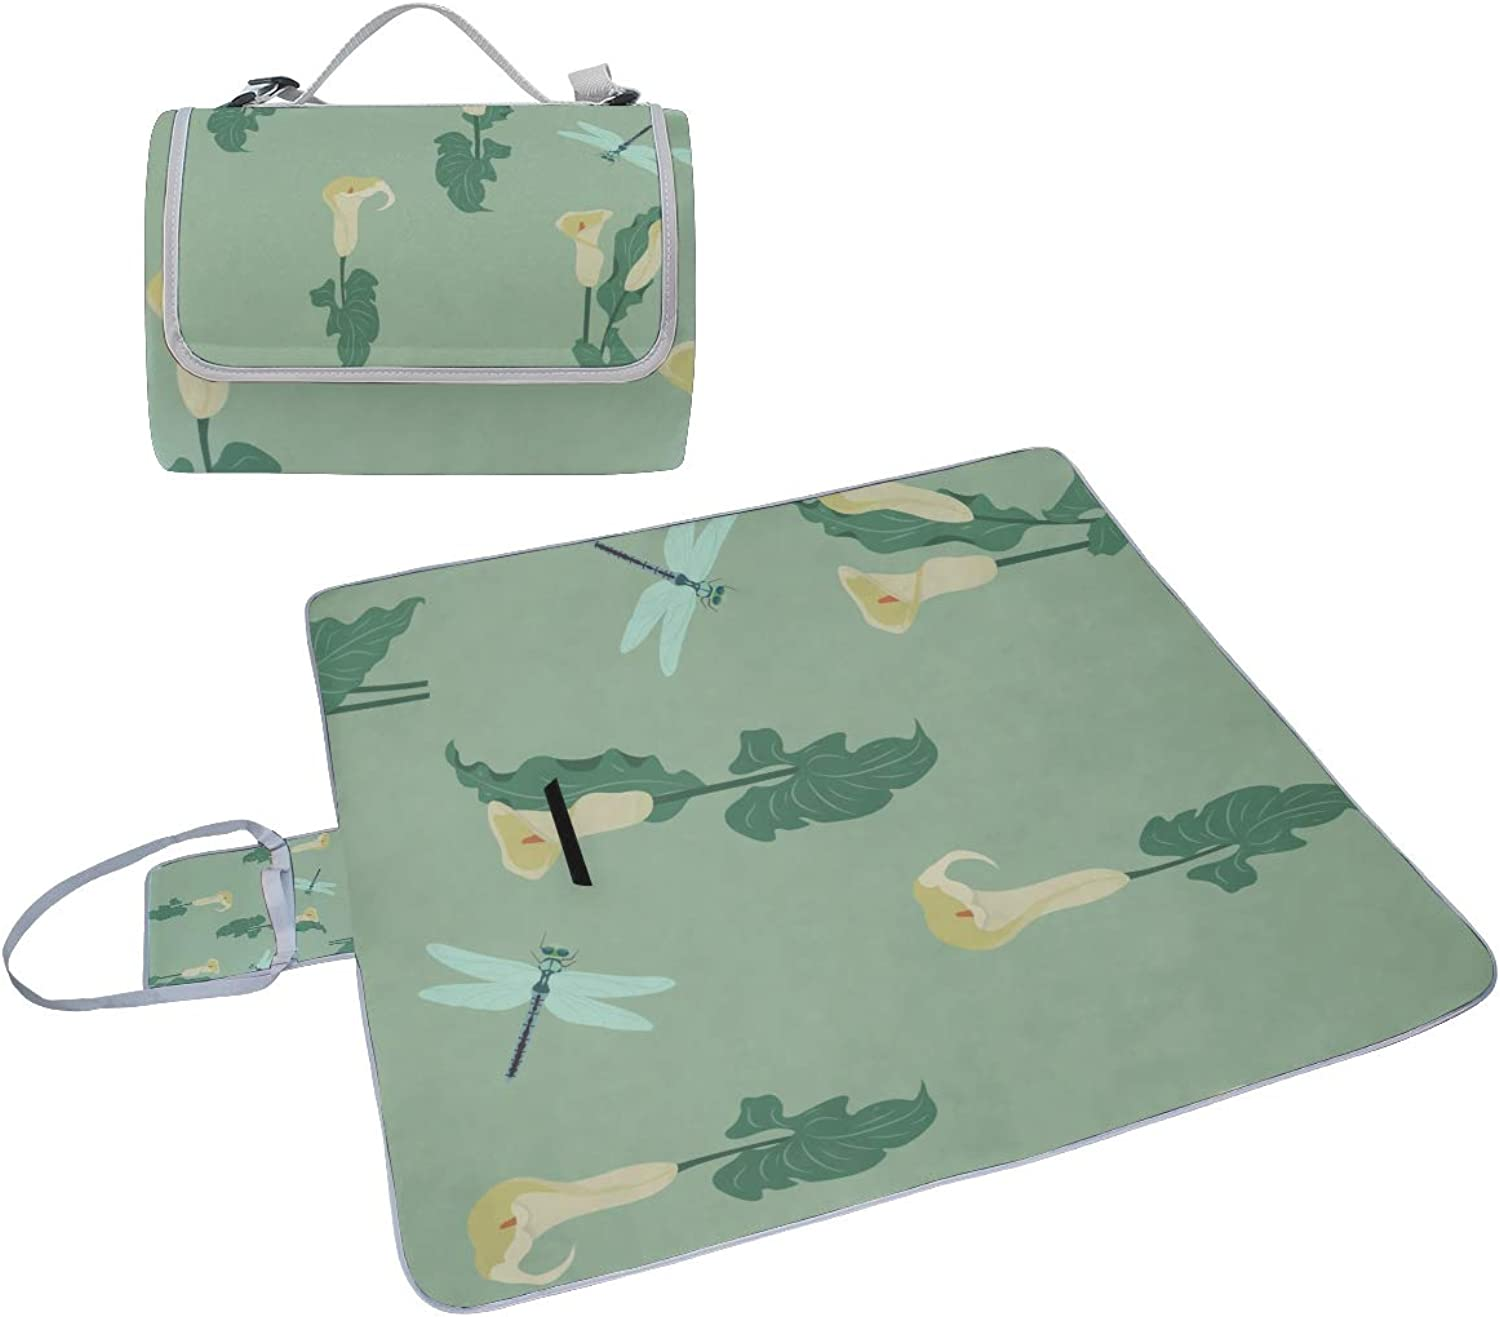 Family Picnic Blanket Handy Tote Calla Yellow Floral Hand Drawn Romatic Single Side Printing Foldable Sandproof Waterproof Camping Mat for Outdoor Beach Hiking Grass Travel Outings